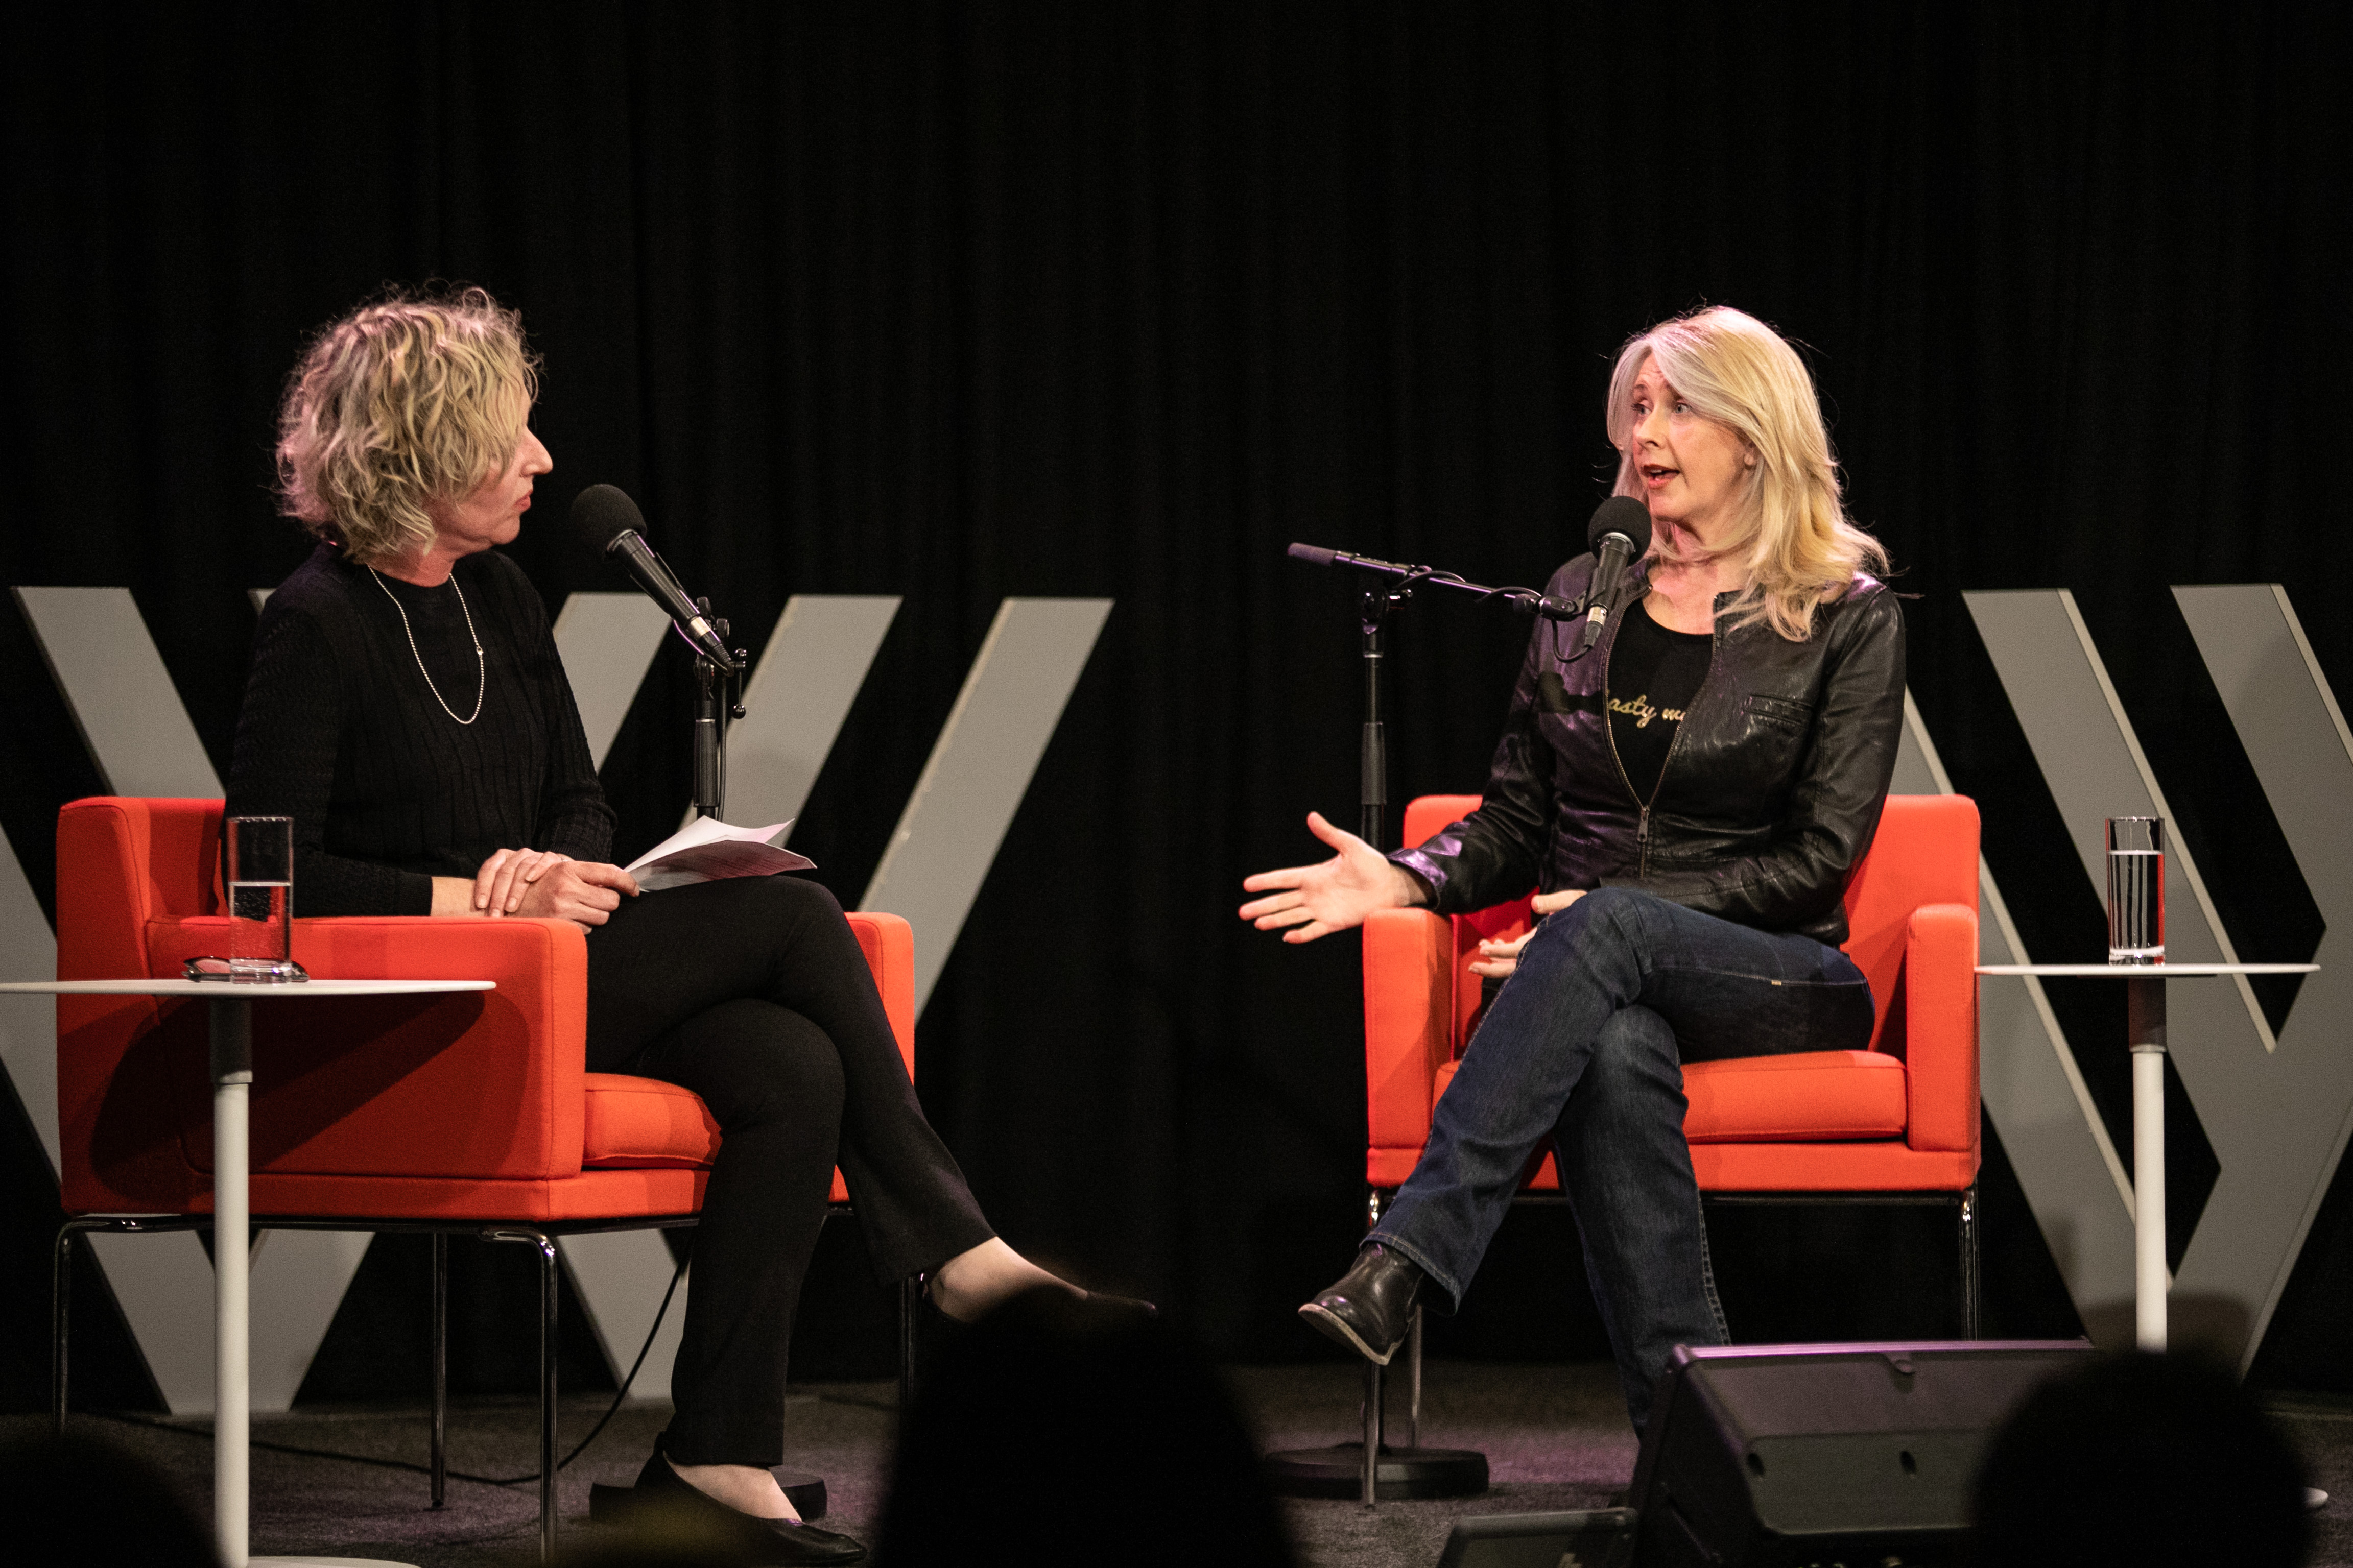 Photo of Sally Warhaft and Tracey Spicer, who is gesturing and speaking